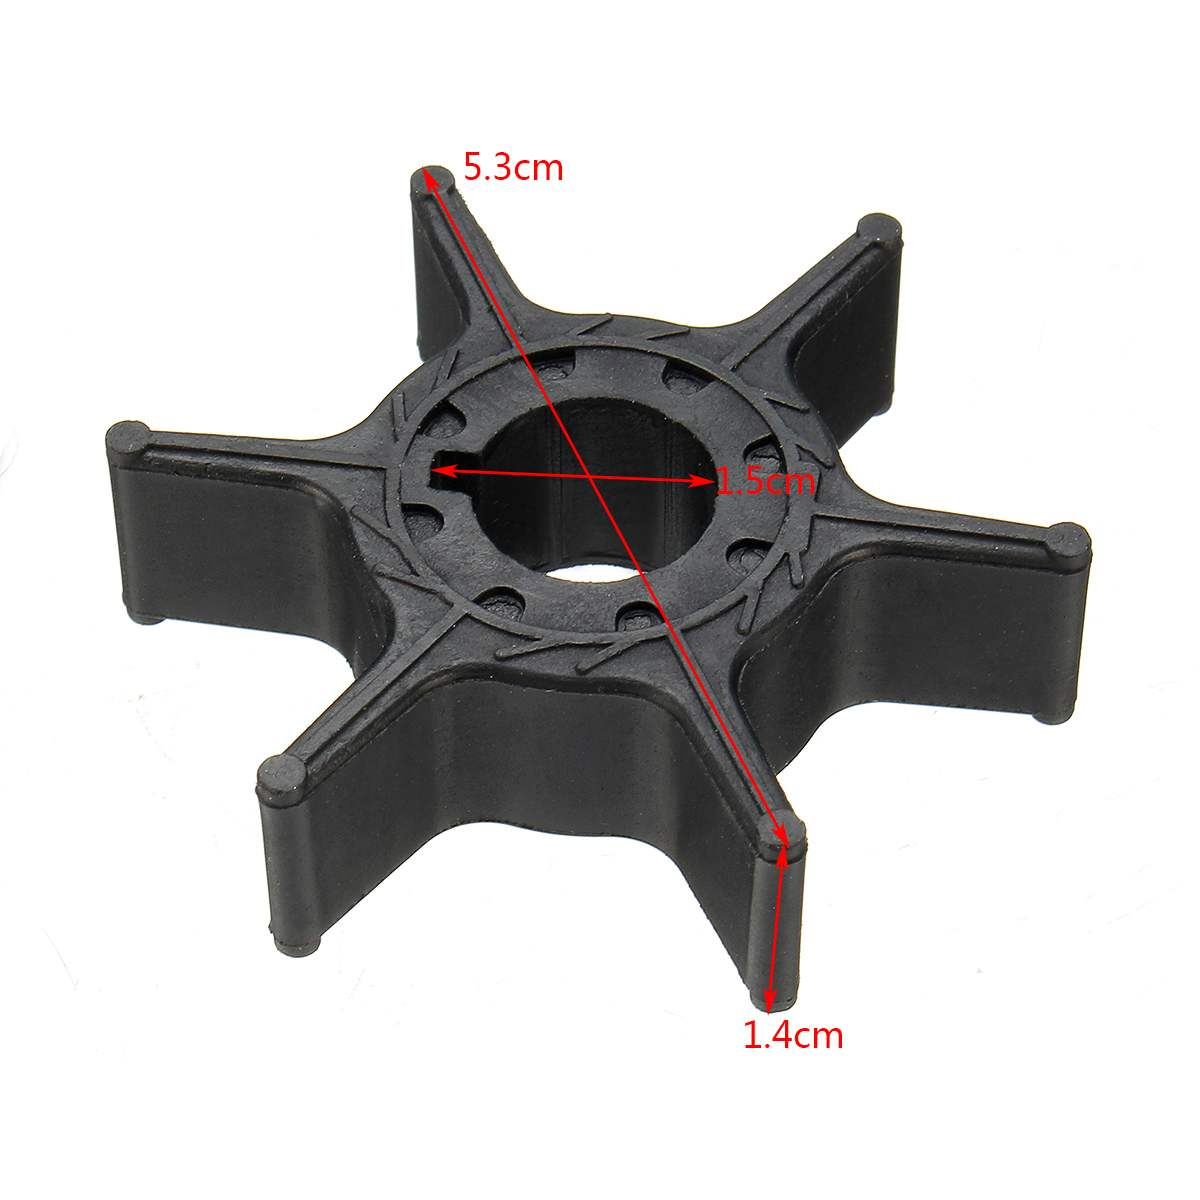 63V-44352-01 Water Pump Impeller For Yamaha 8HP 9.9HP 15HP 20HP Outboard Motor Black Rubber 6 Blades Boat Parts & Accessories